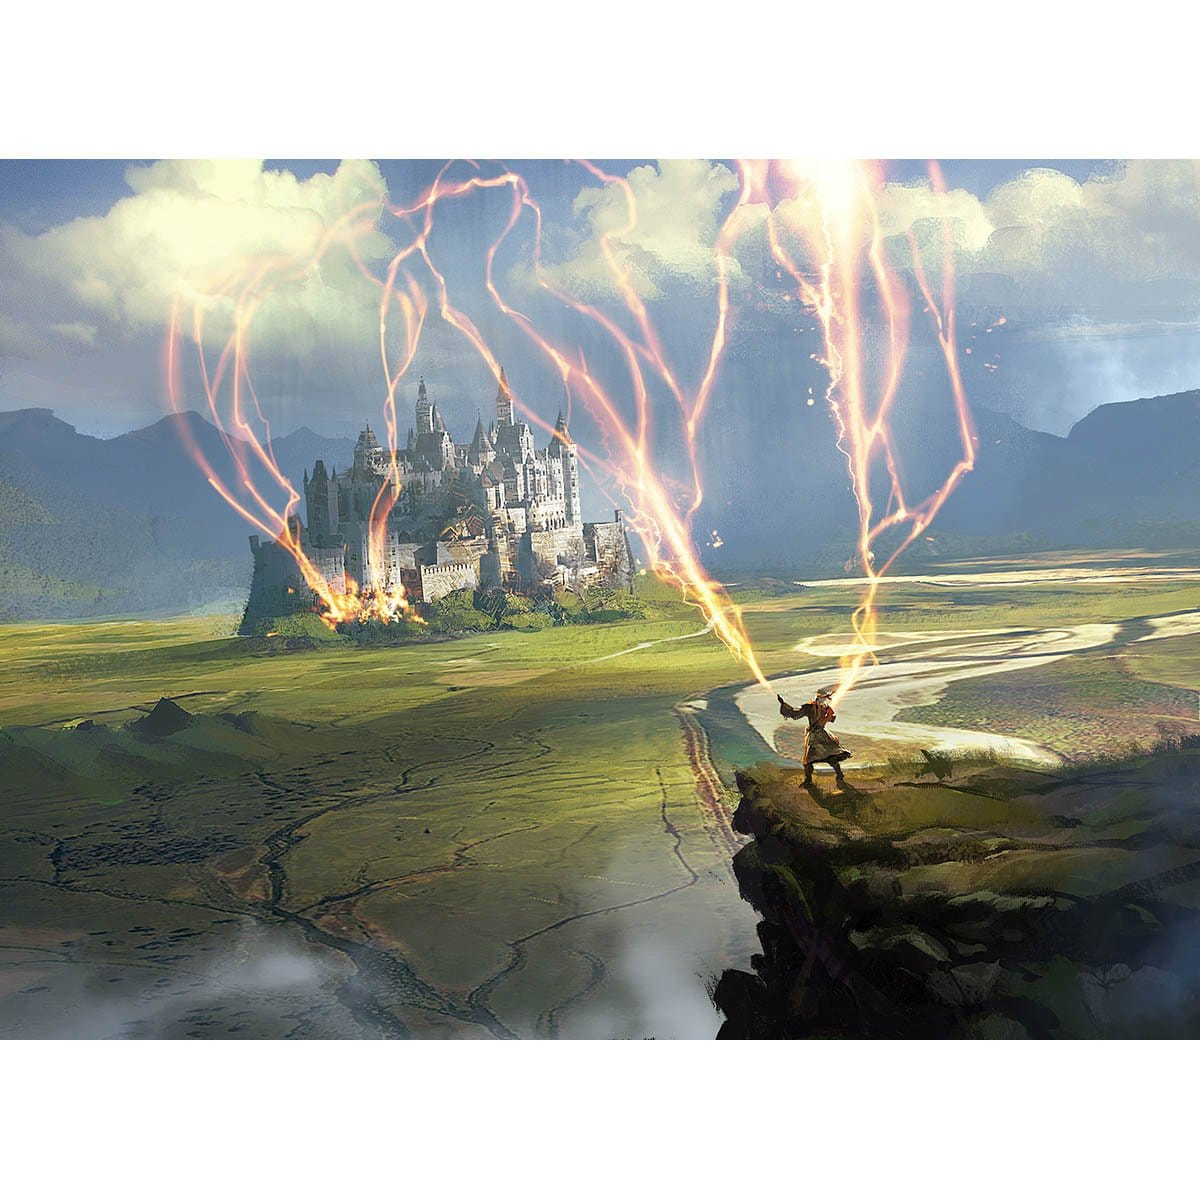 Wizard's Lightning Print - Print - Original Magic Art - Accessories for Magic the Gathering and other card games